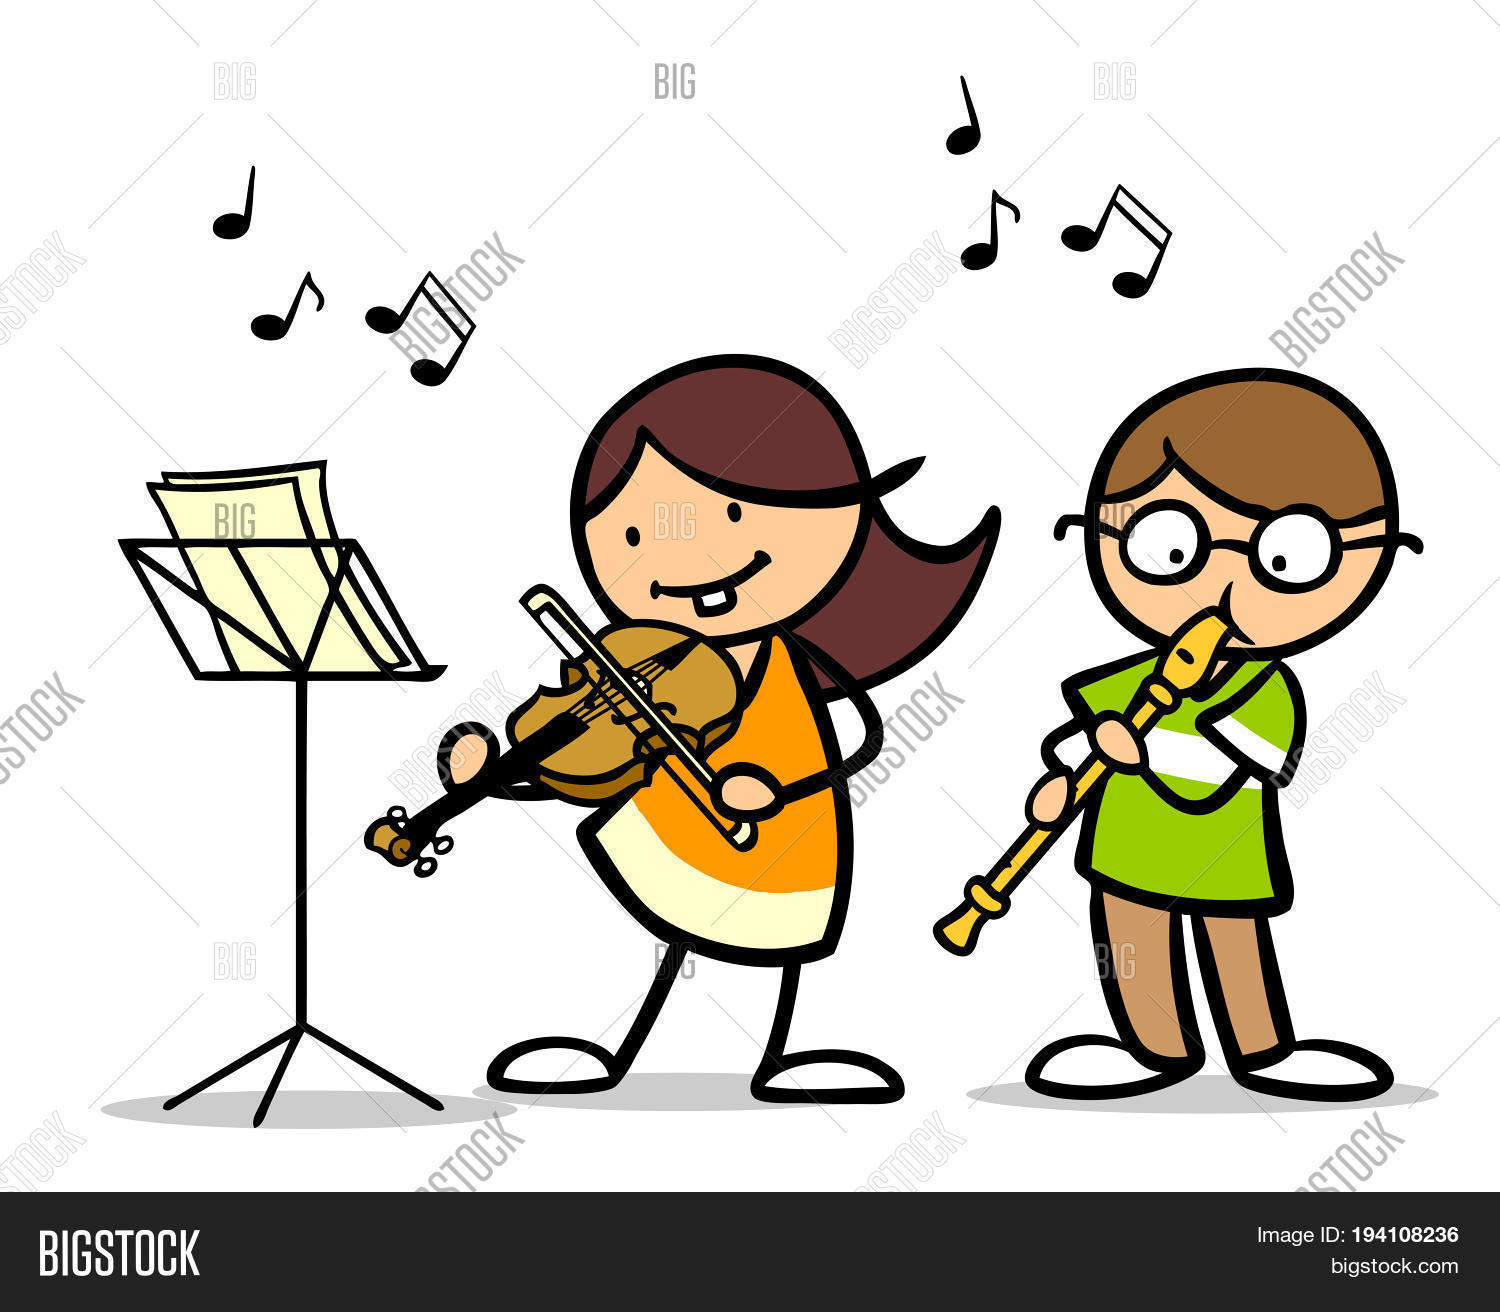 cartoon music children playing instrument musical